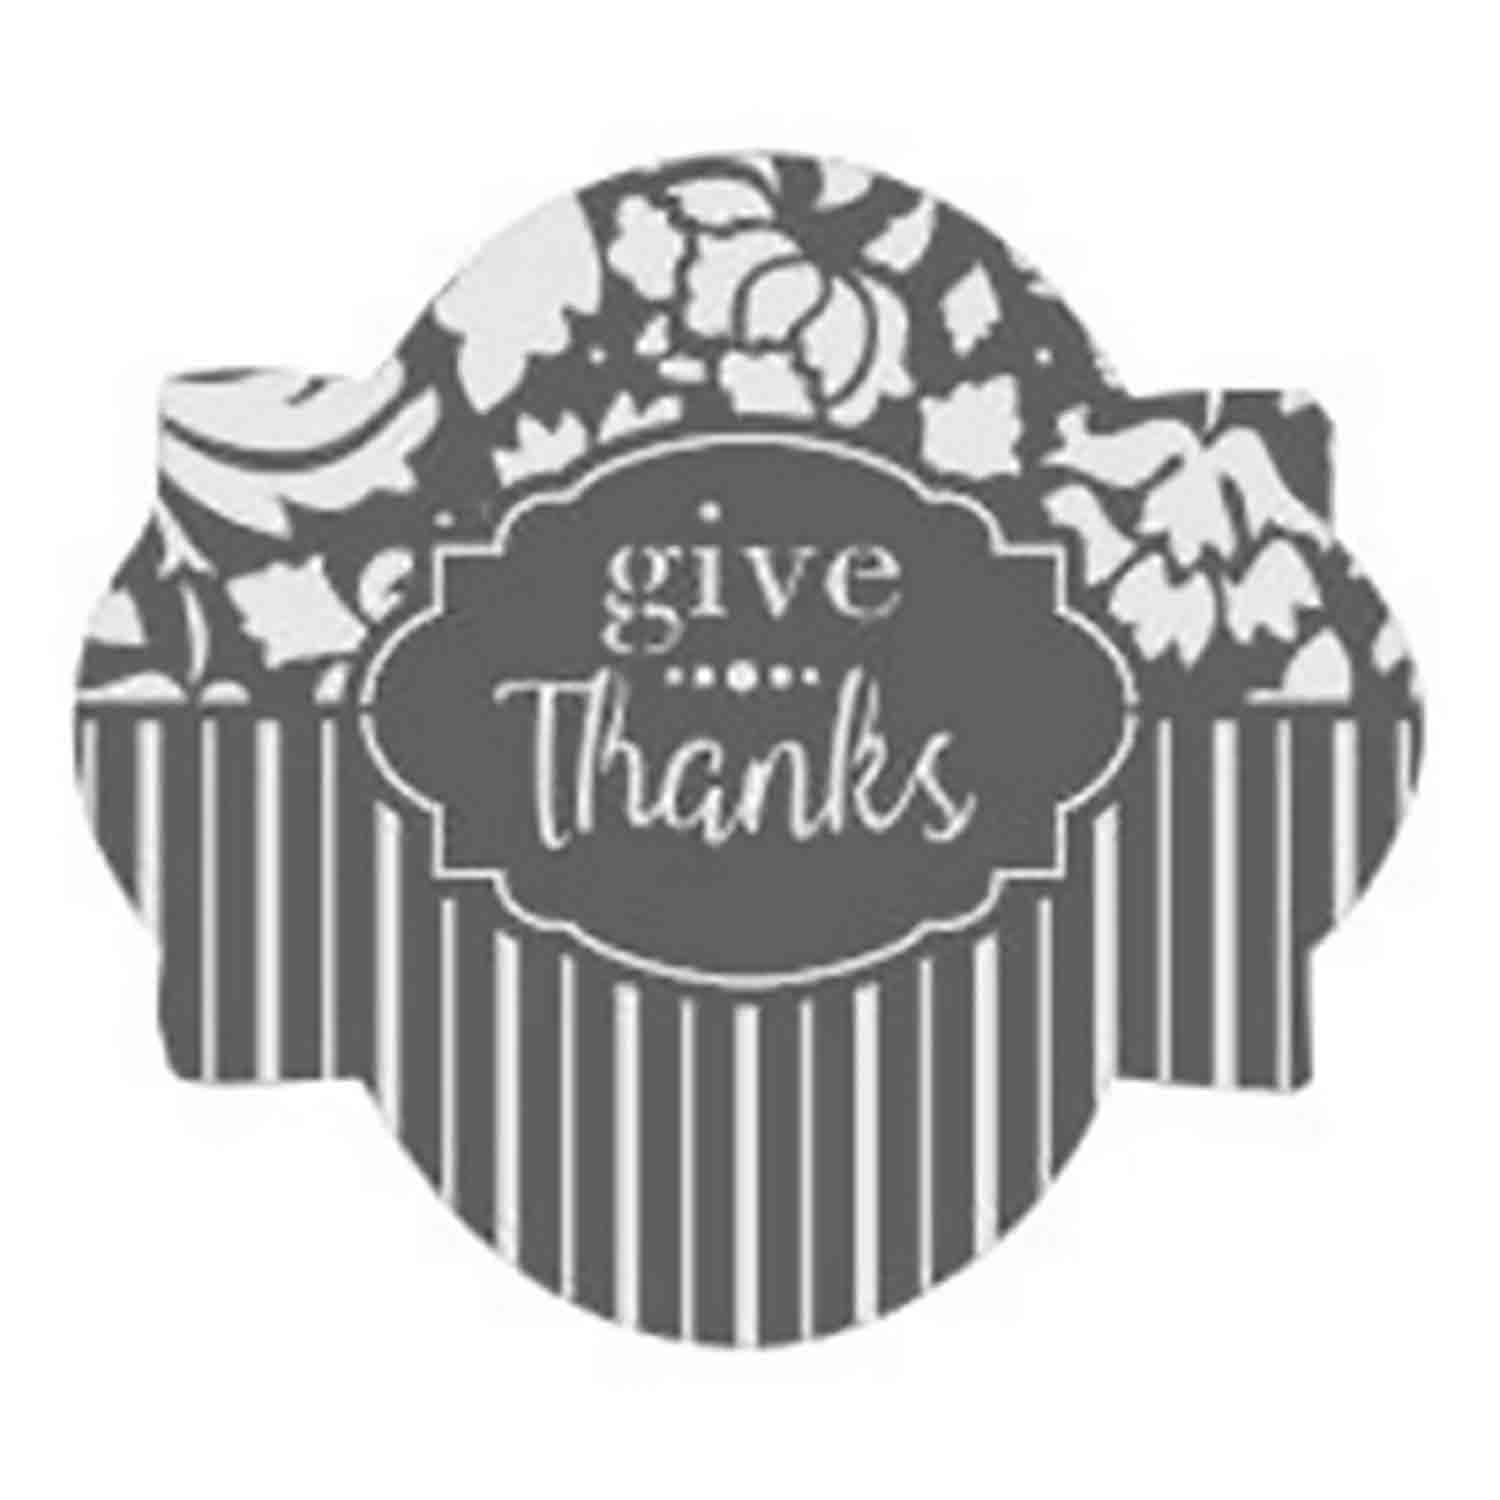 Give Thanks Cookie Stencil Set by Julia M Usher